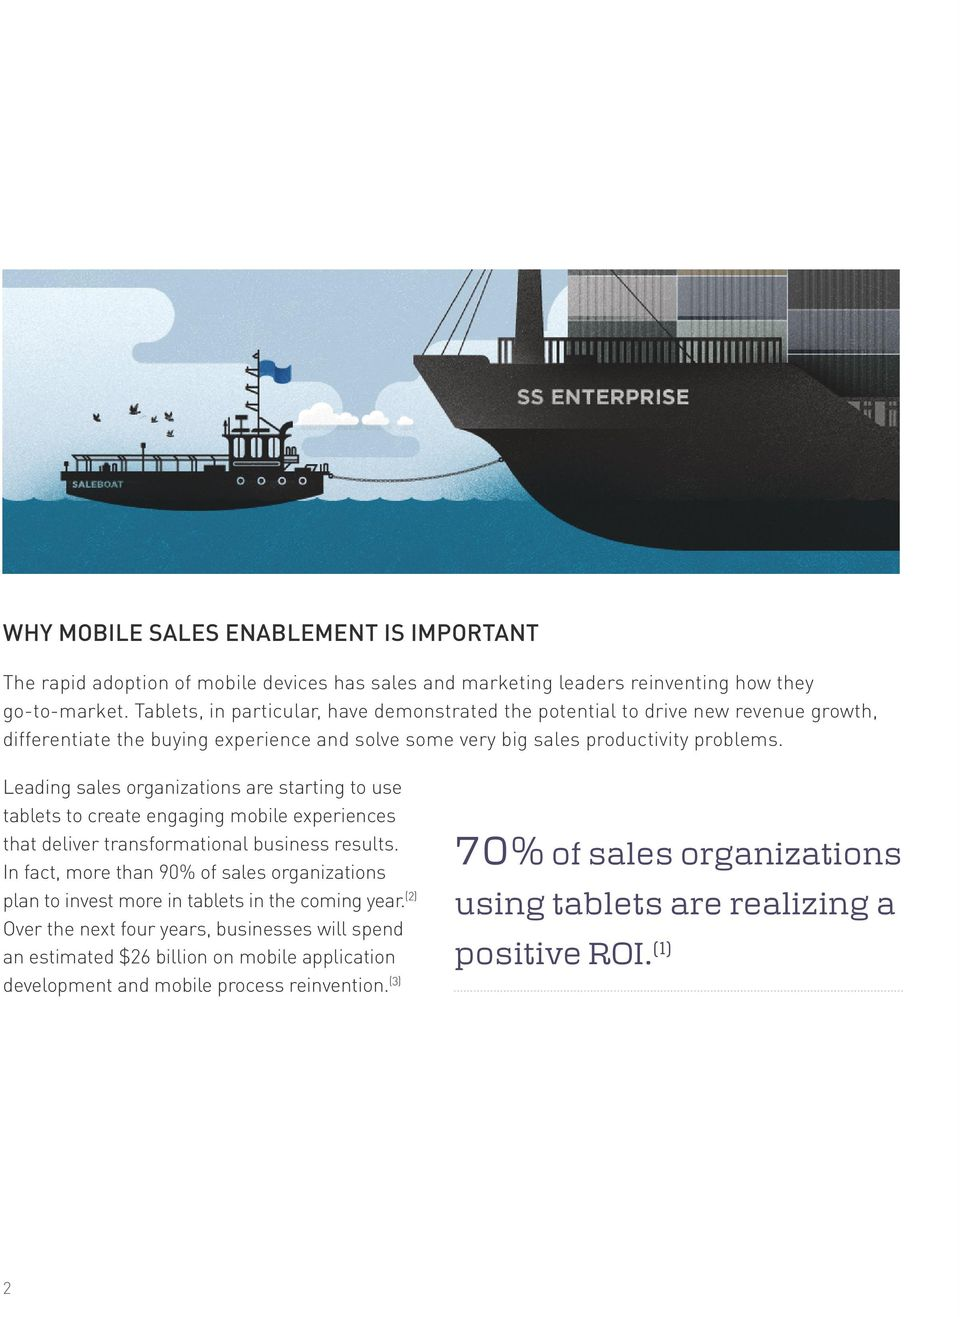 Leading sales organizations are starting to use tablets to create engaging mobile experiences that deliver transformational business results.